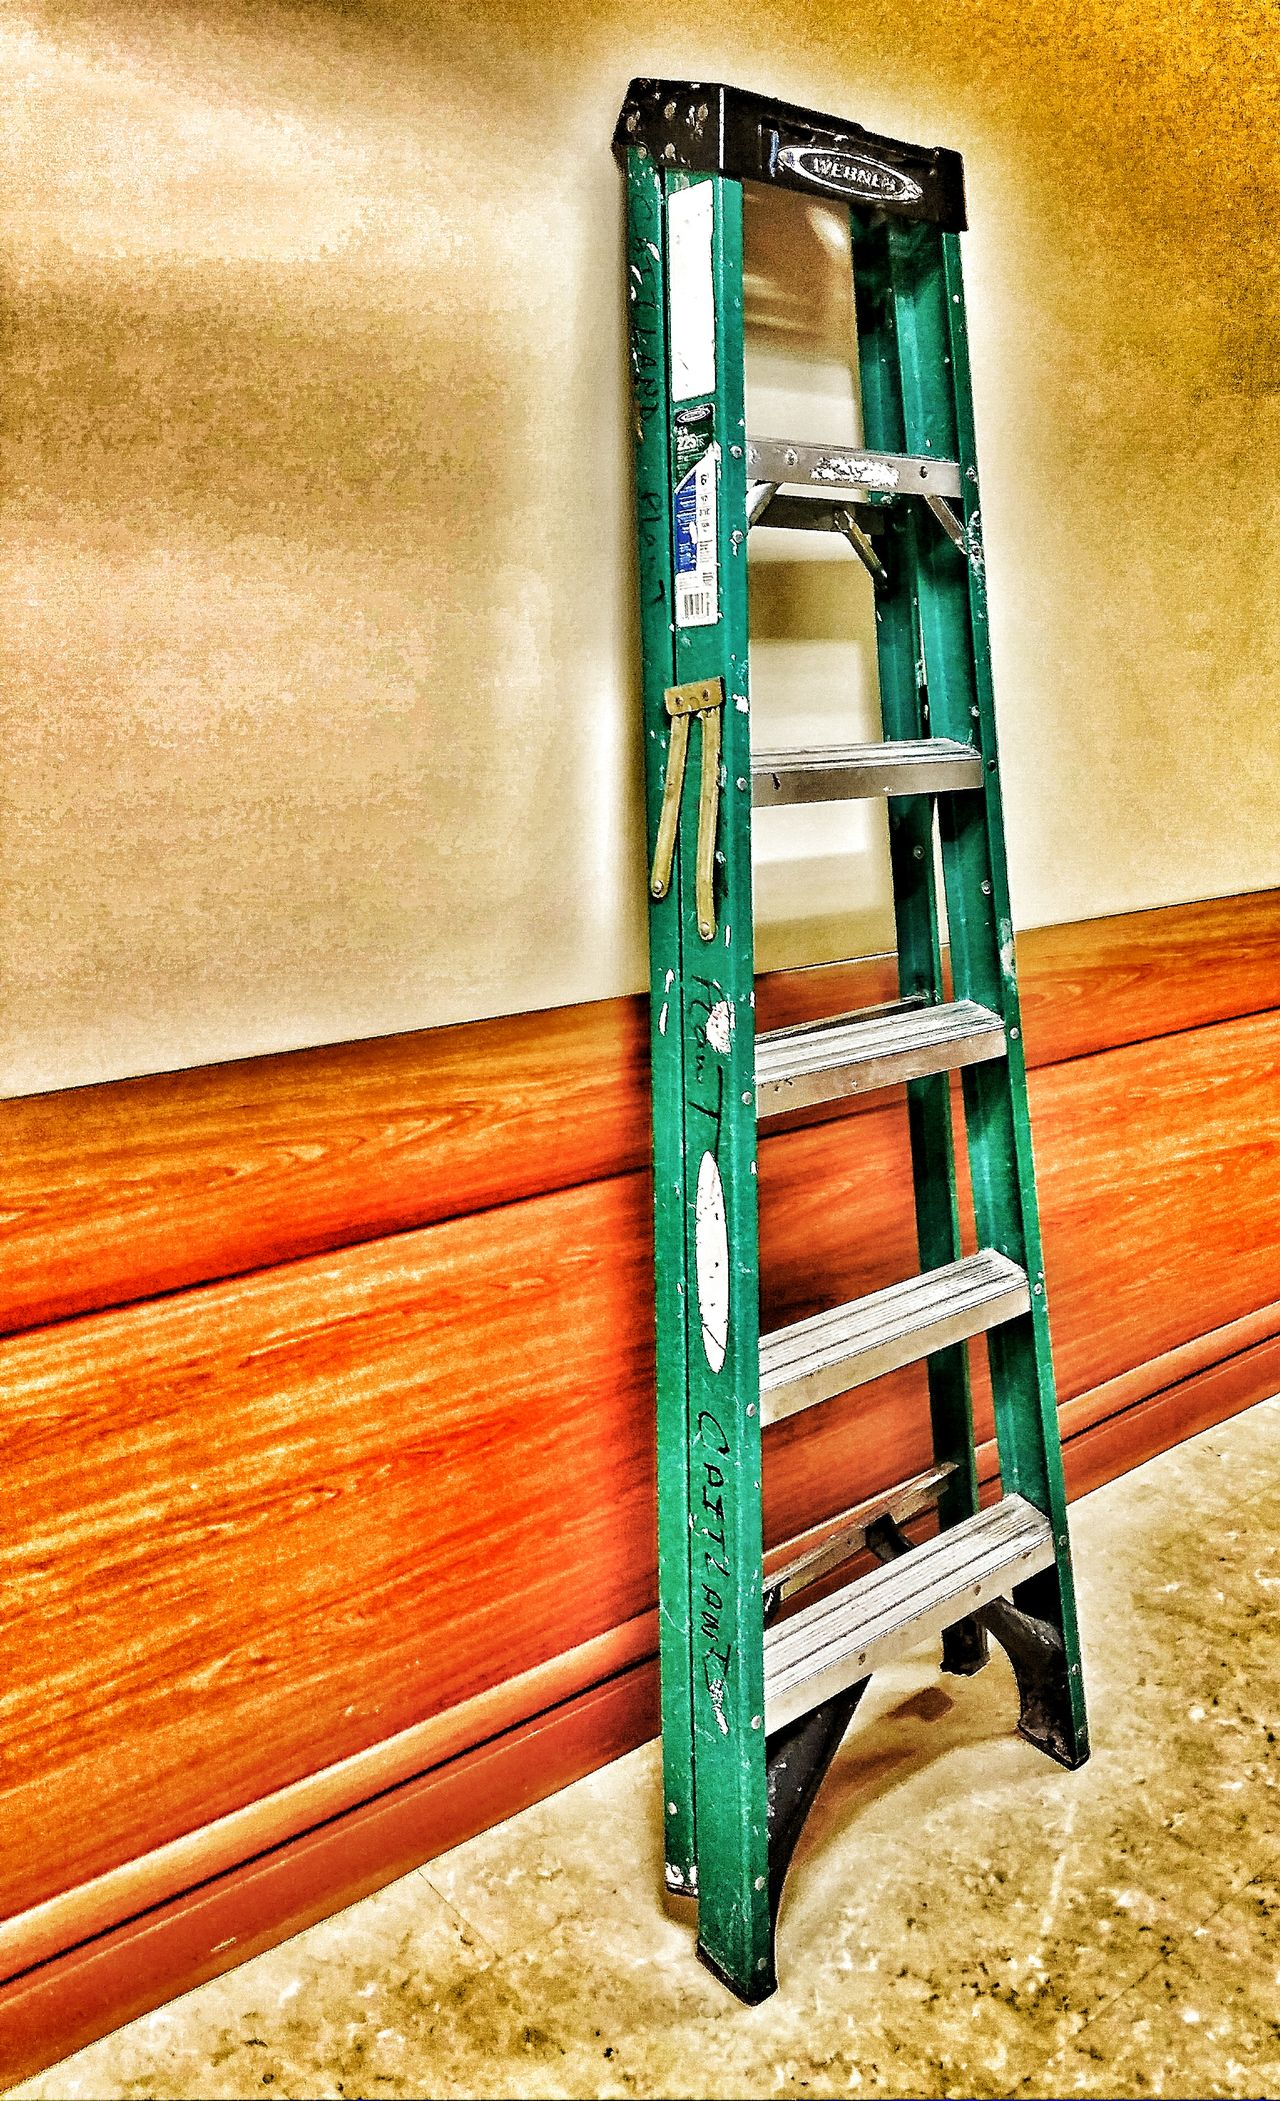 Working Nights Simplicity Lone ladder abandoned in the hallway at 3:30 am...